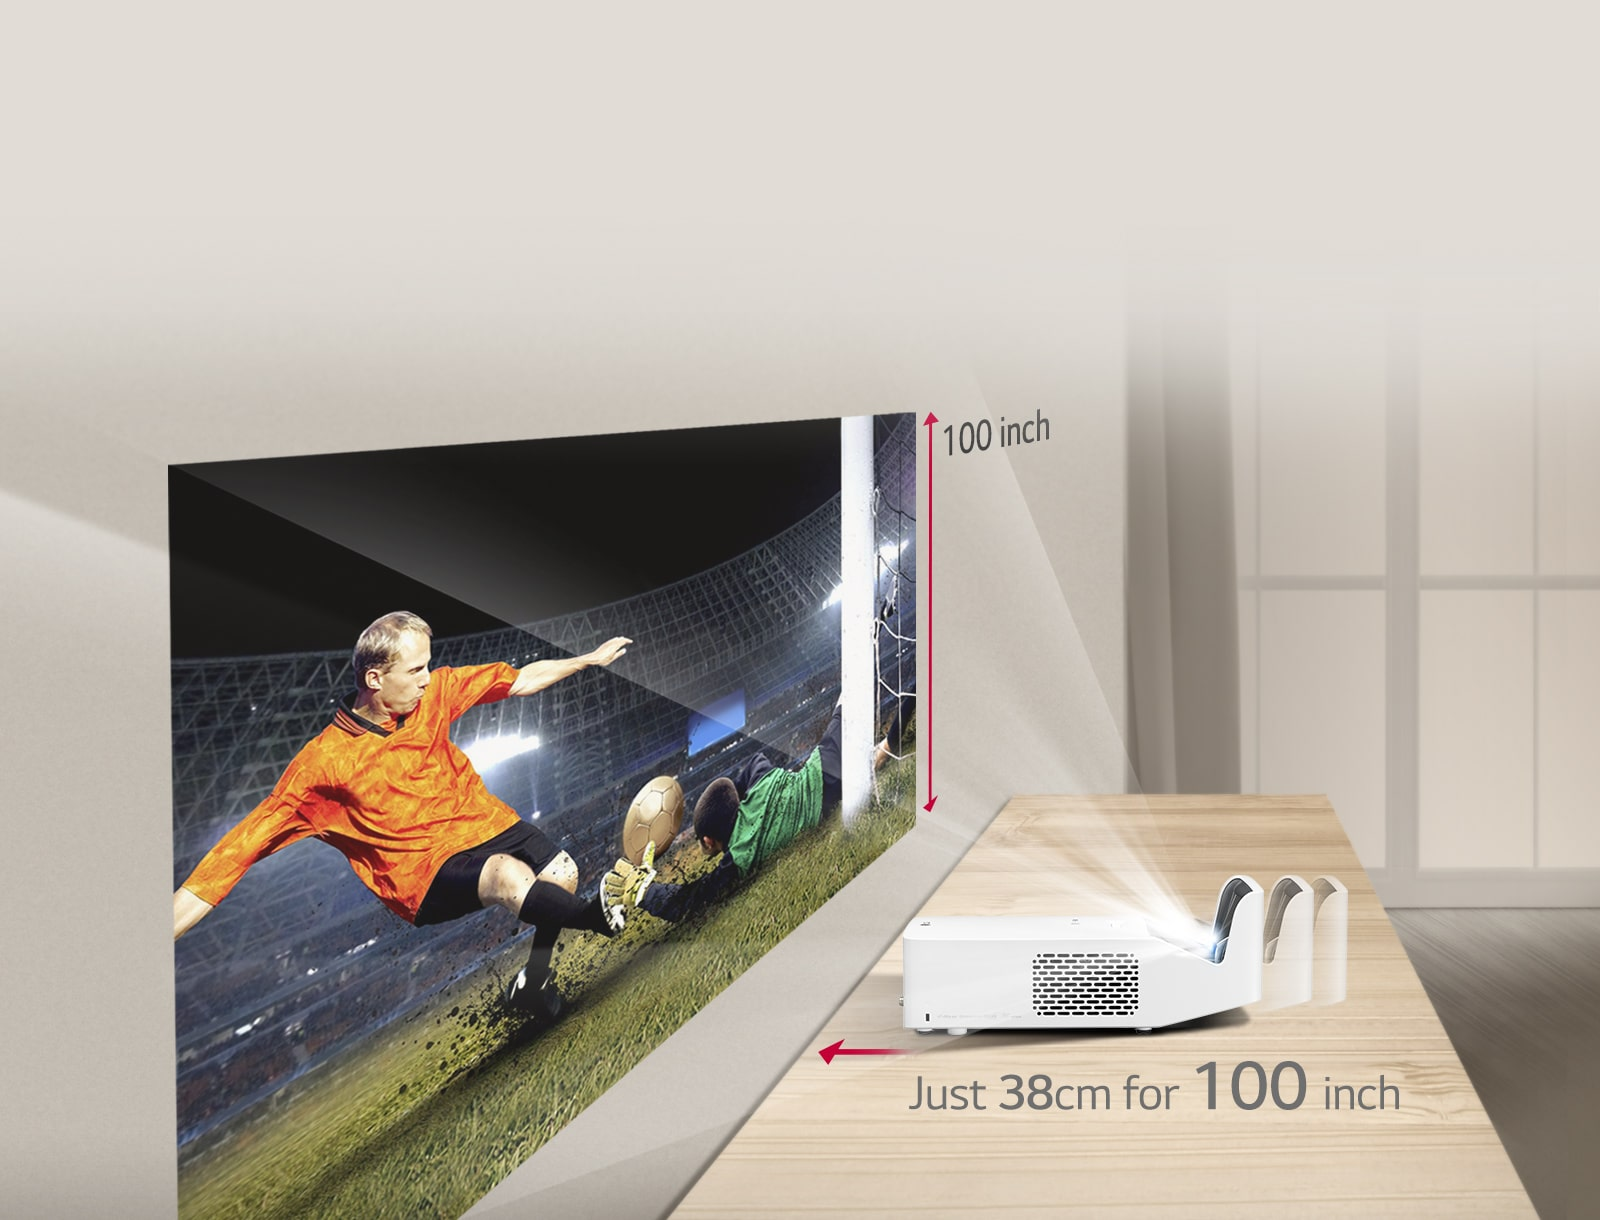 Only 38cm to Get 100 inch Big Picture1